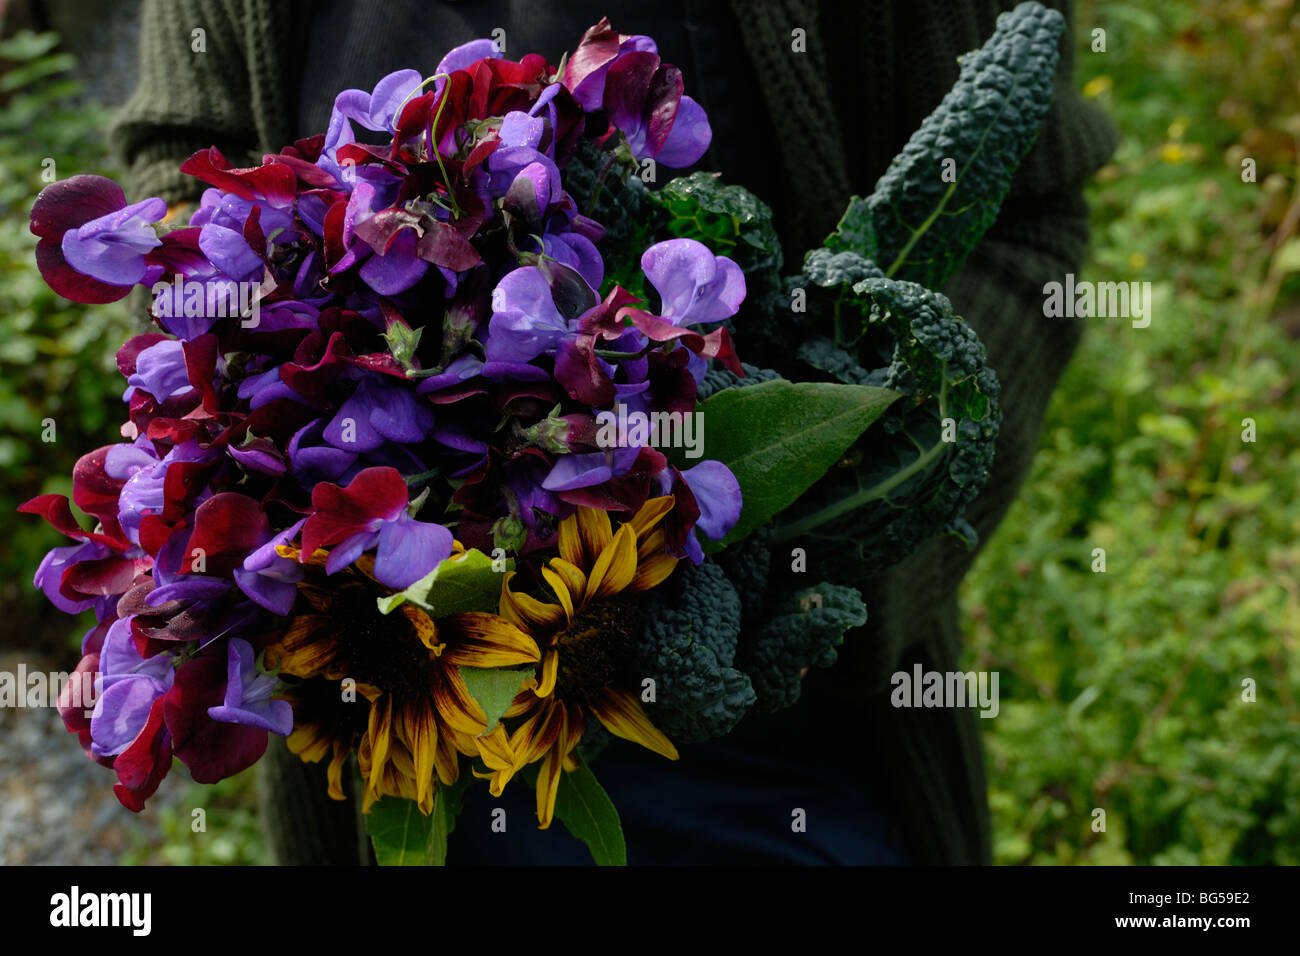 A bunch of Sweet Pea 'Matacuna', Sunflower 'Ring of Fire' and Kale, 'Nero di Toscana'. - Stock Image